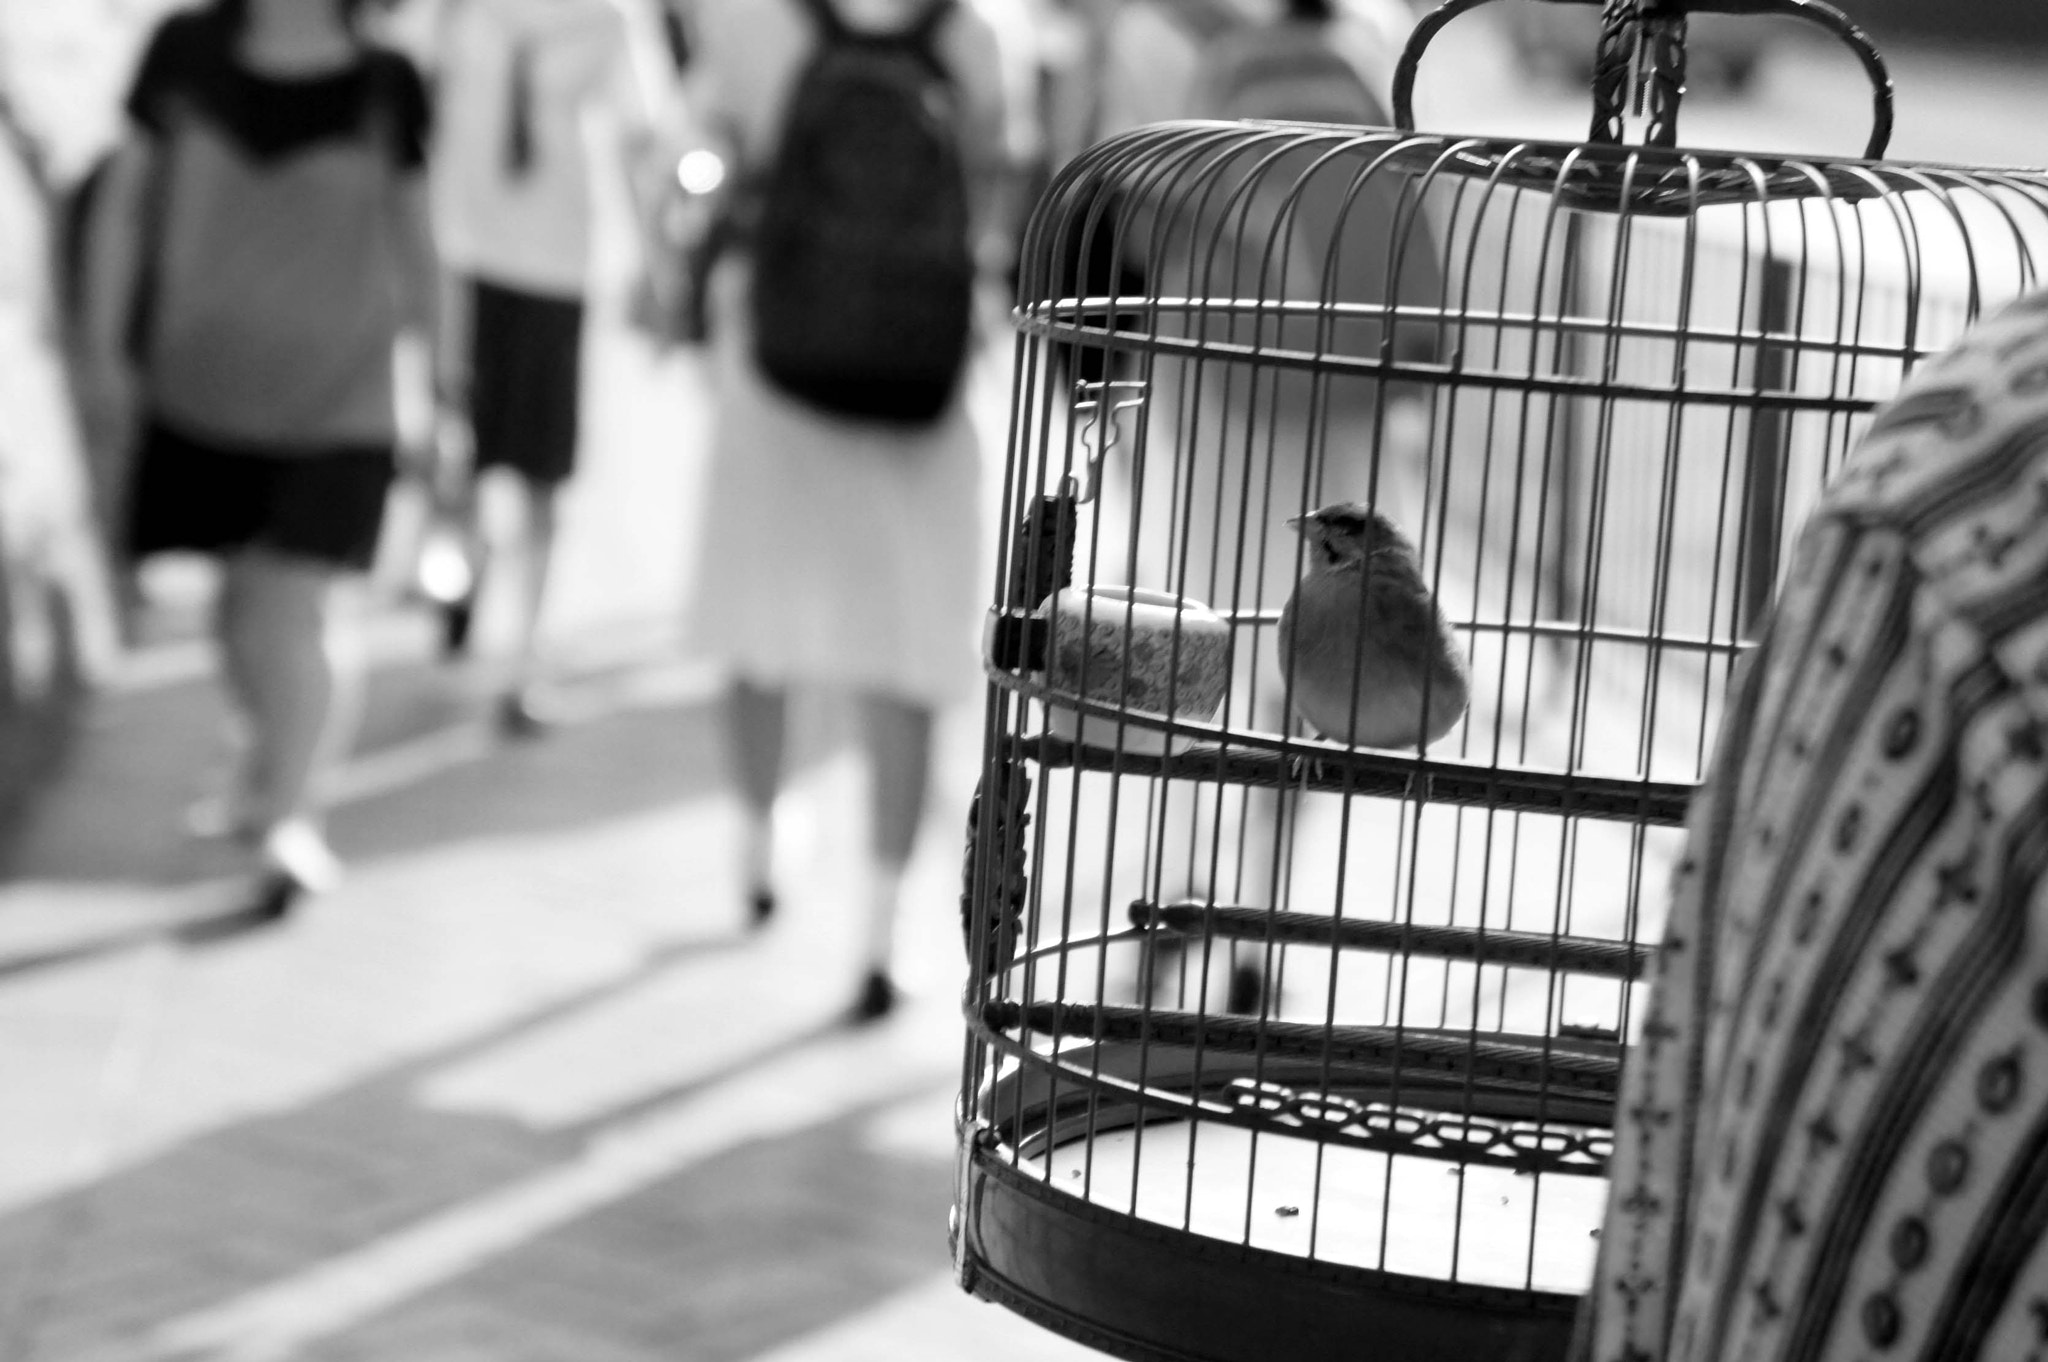 Photograph going for a stroll with pet! by Wayne Hor on 500px